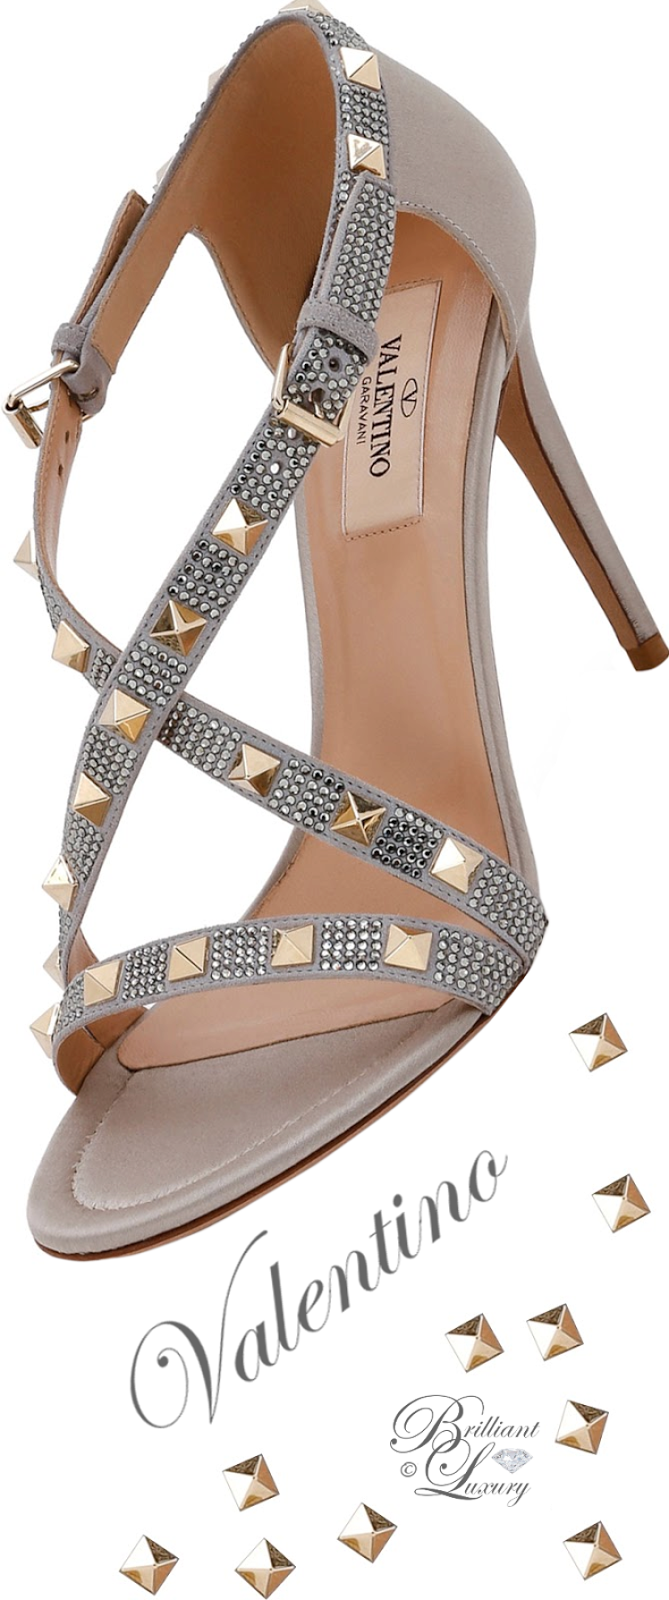 Brilliant Luxury ♦ Valentino Rockstud Strass Crisscross Sandal